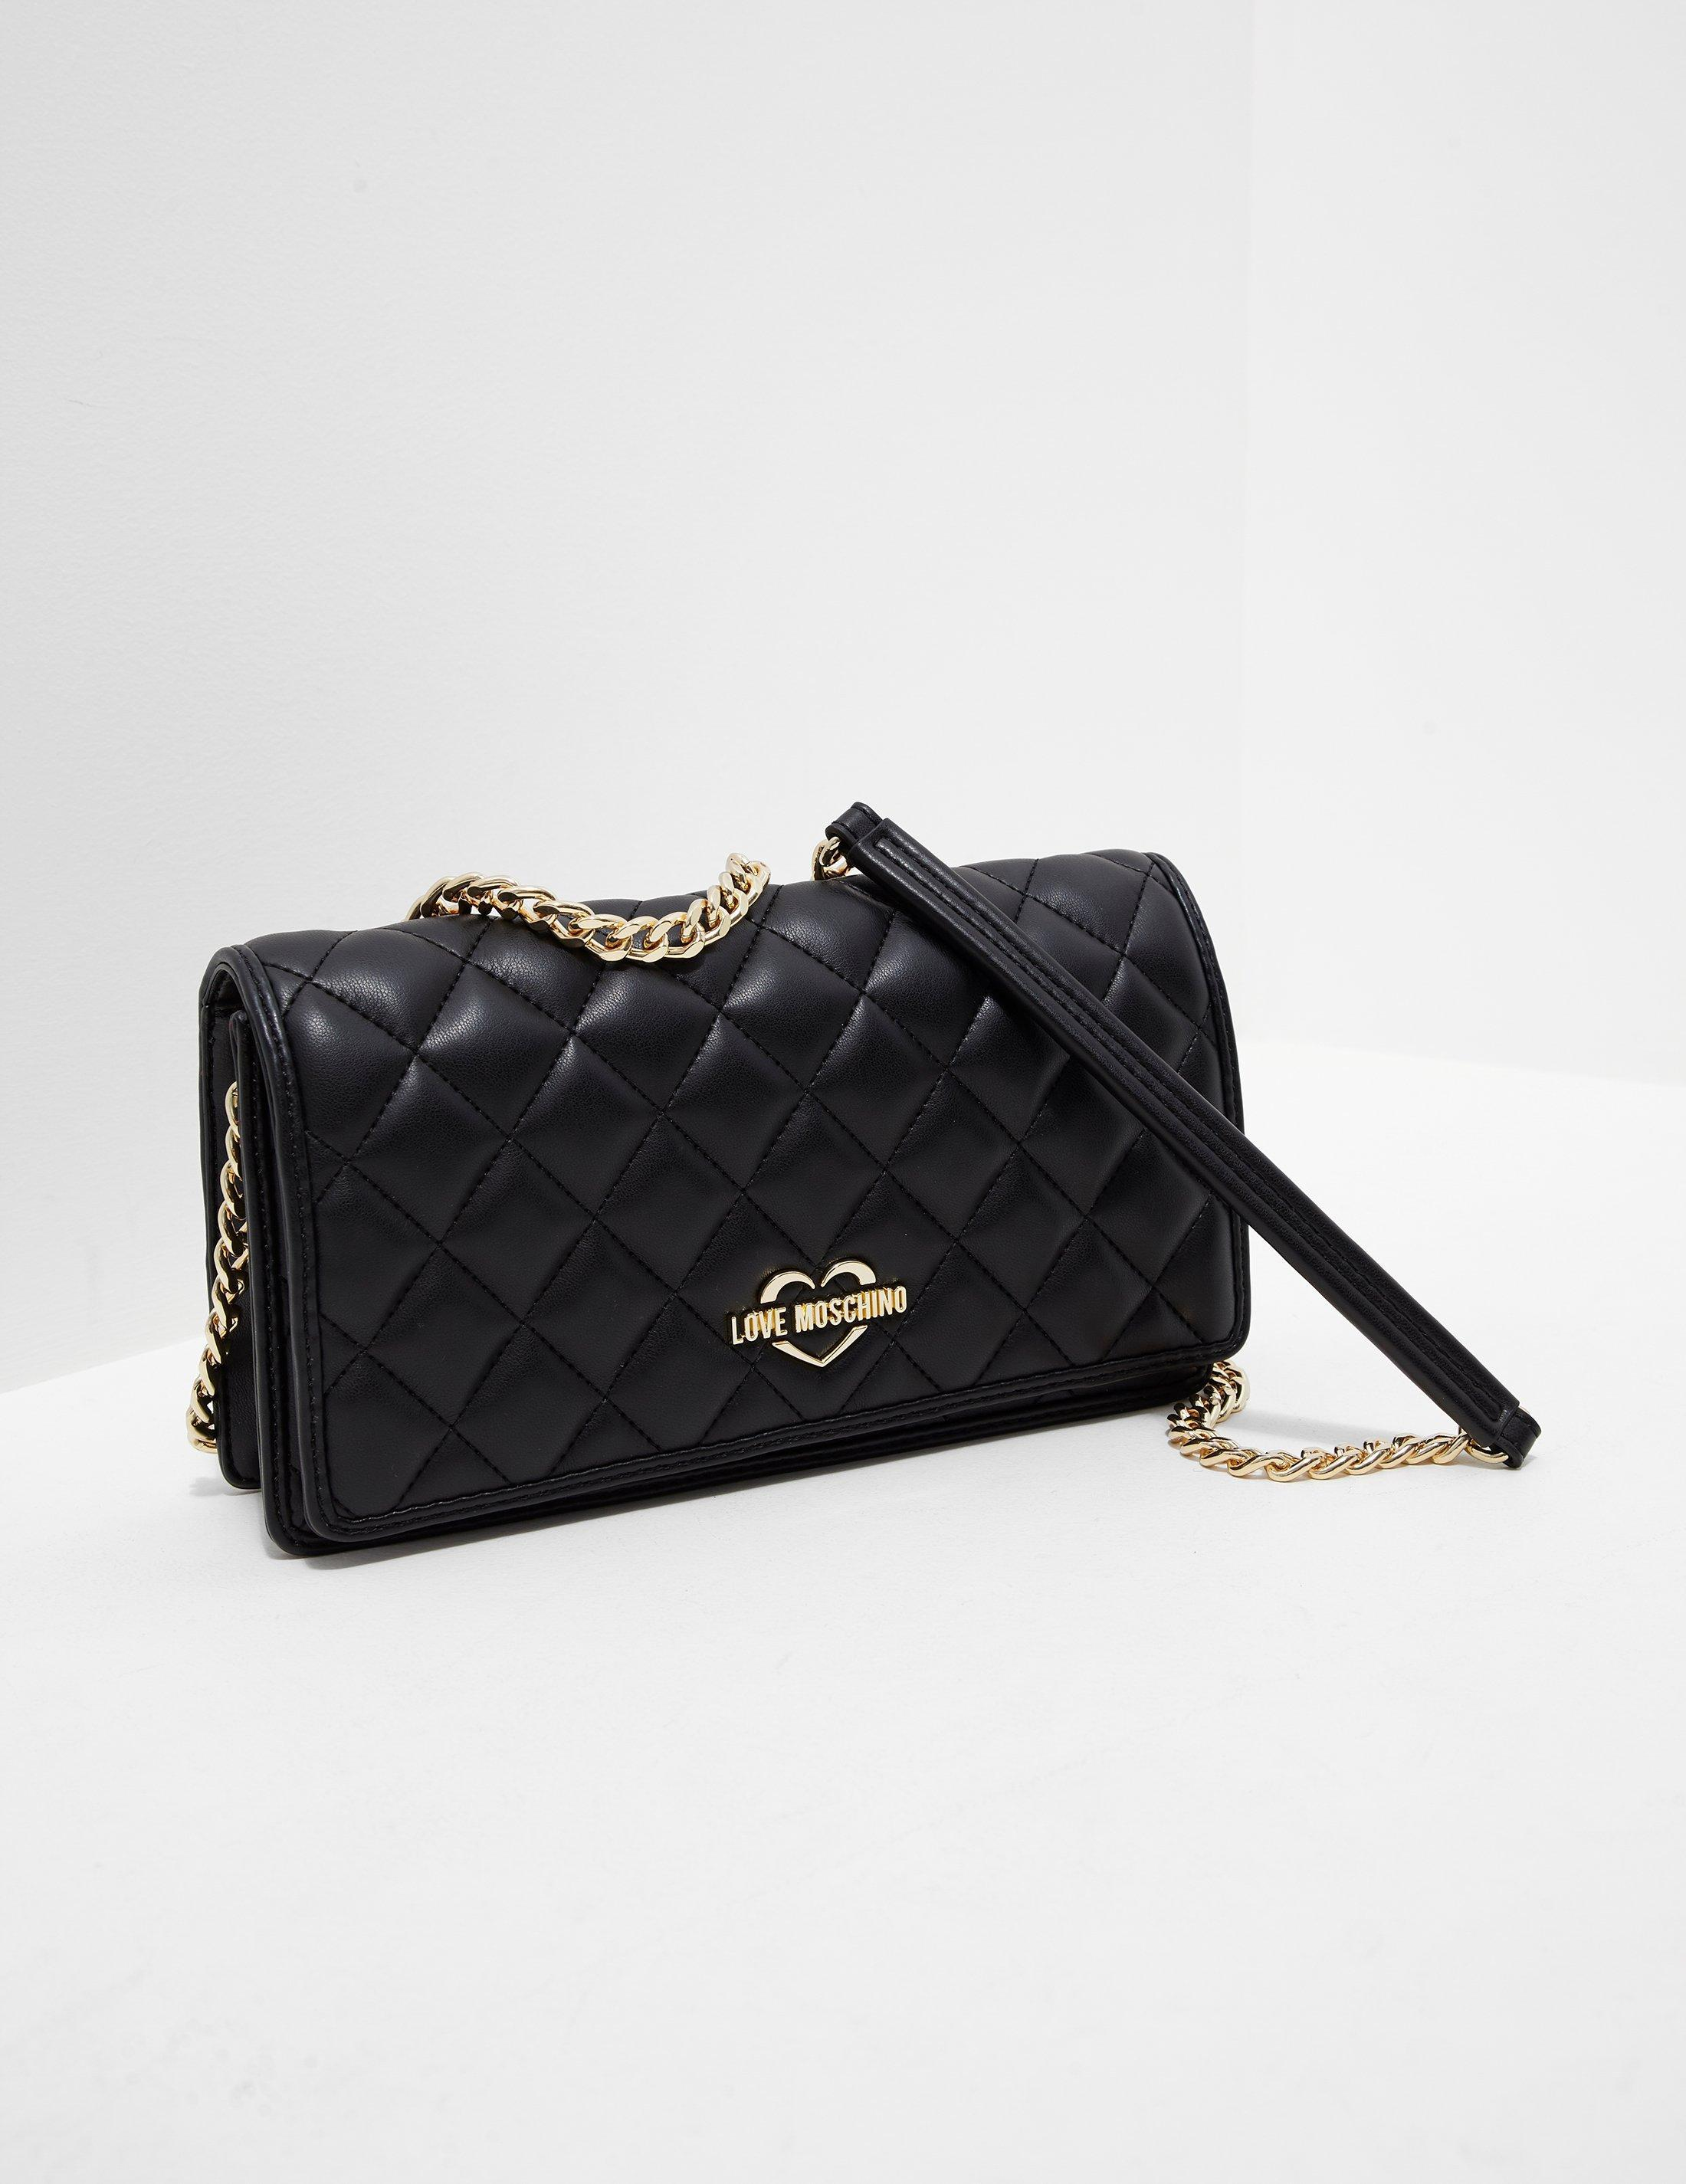 3c96cd3dd49c Lyst - Love Moschino Womens Small Quilted Clutch Bag Black in Black